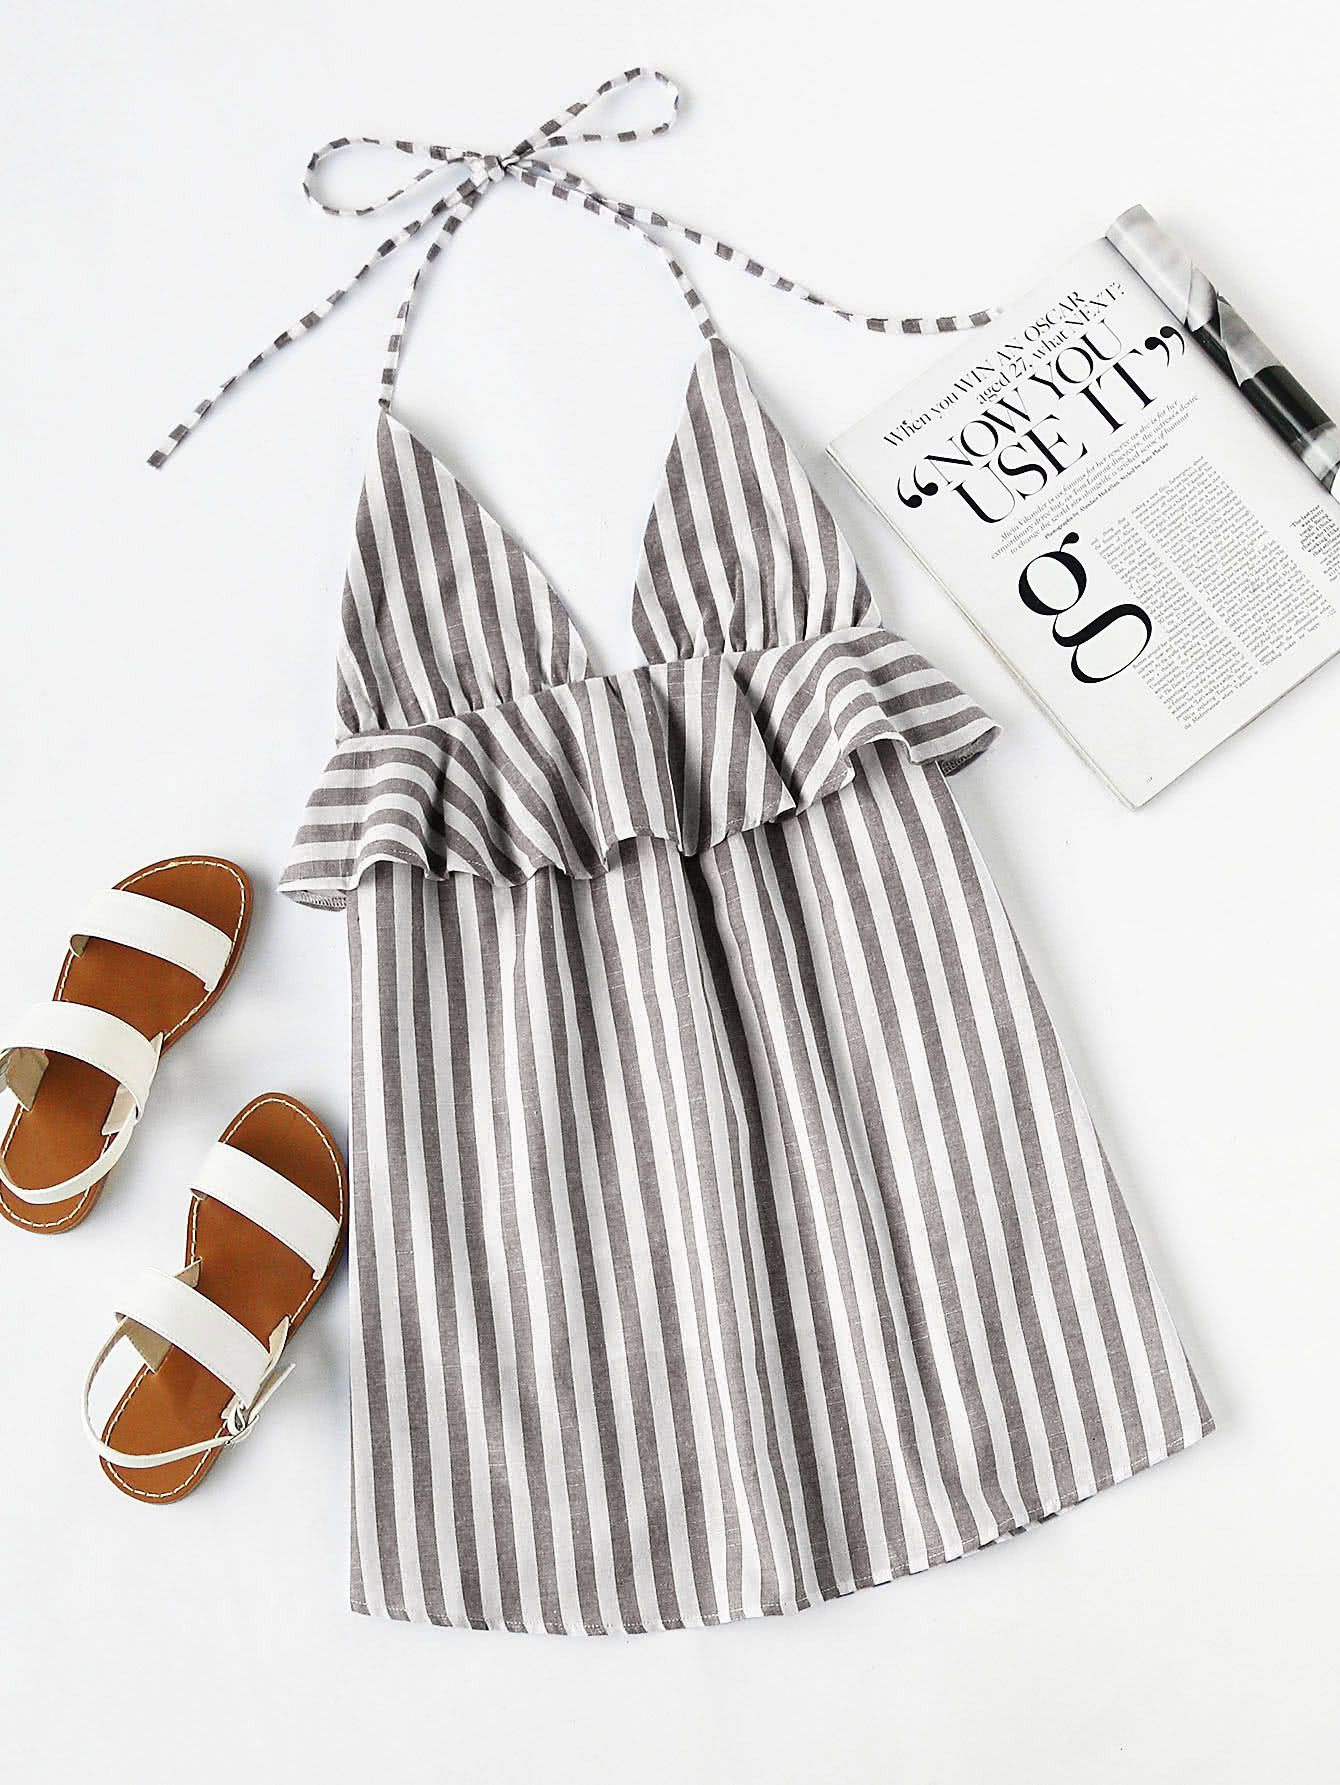 71b9ee242c6e Material: Polyester Color: Grey Pattern Type: Striped Neckline: Halter Style:  Vacation